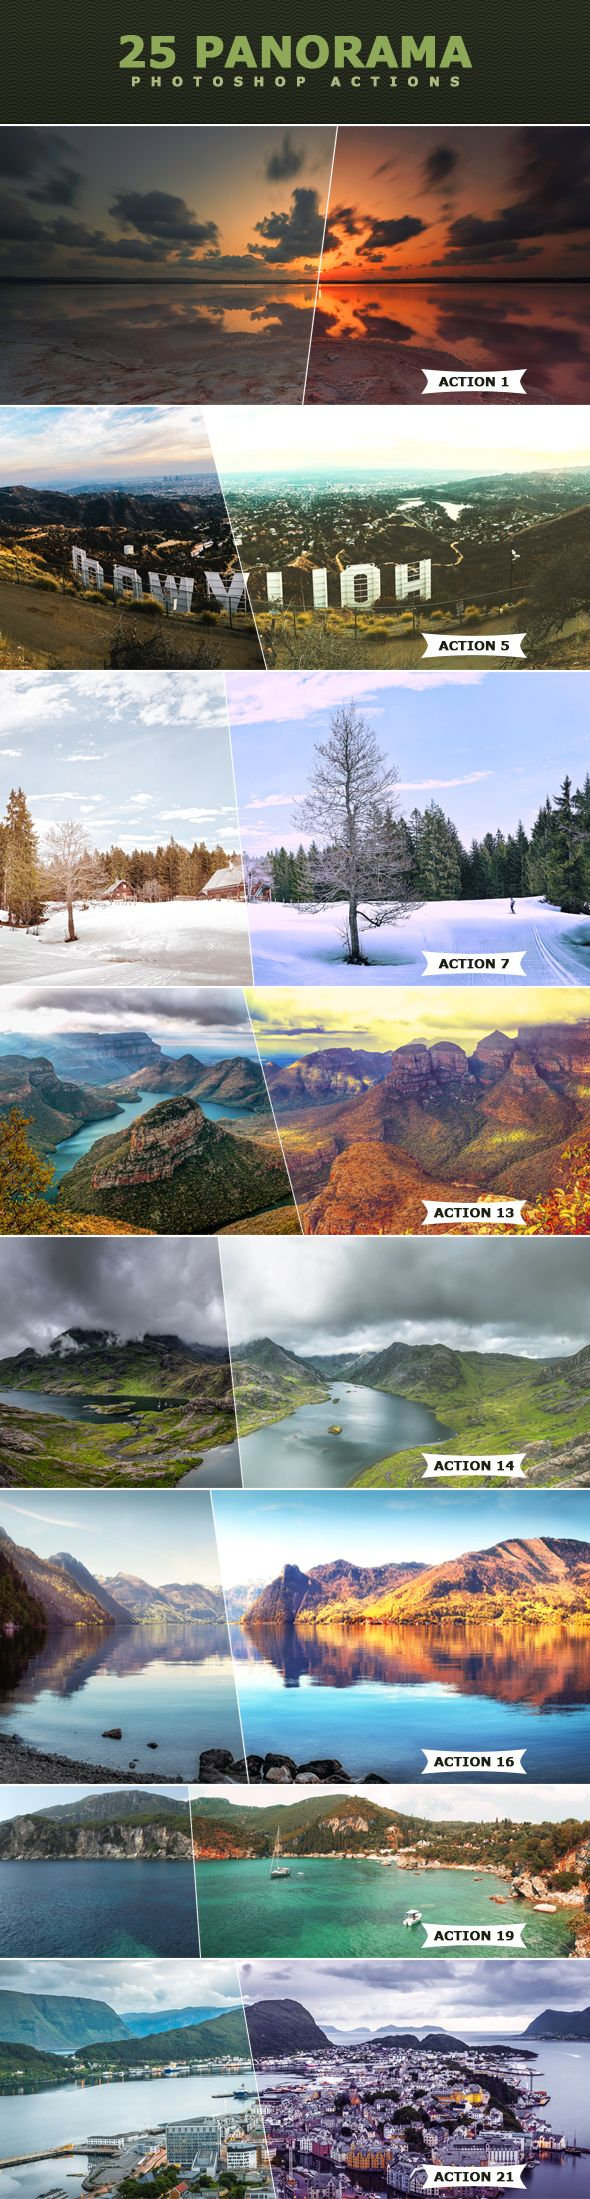 25 Panorama Actions - Photo Effects #Actions